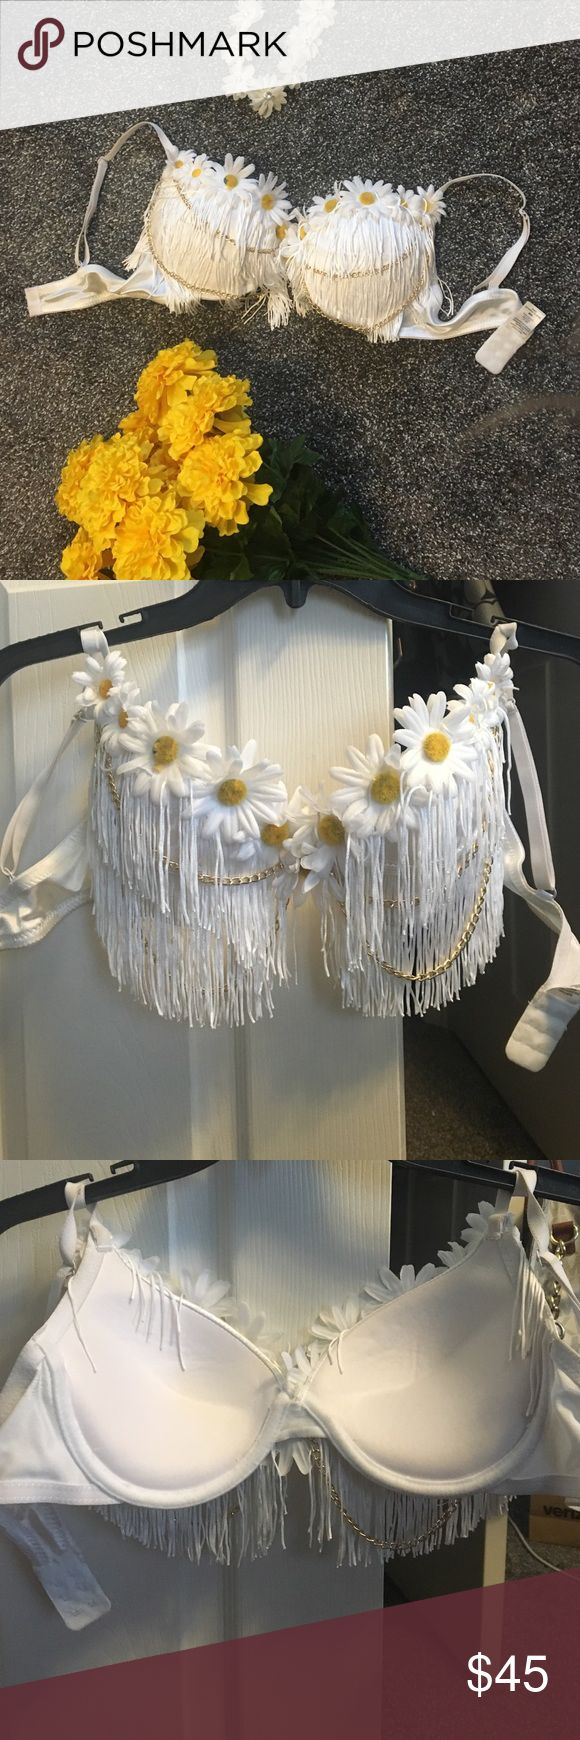 Festival bra top Used once, ready to attend another festival! Very comfy, has push up padding, only flaw is one flower is losing some yellow on the inside but thats all, white fringe with gold chain detailing and daisys, open to reasonable offers, no trades Other